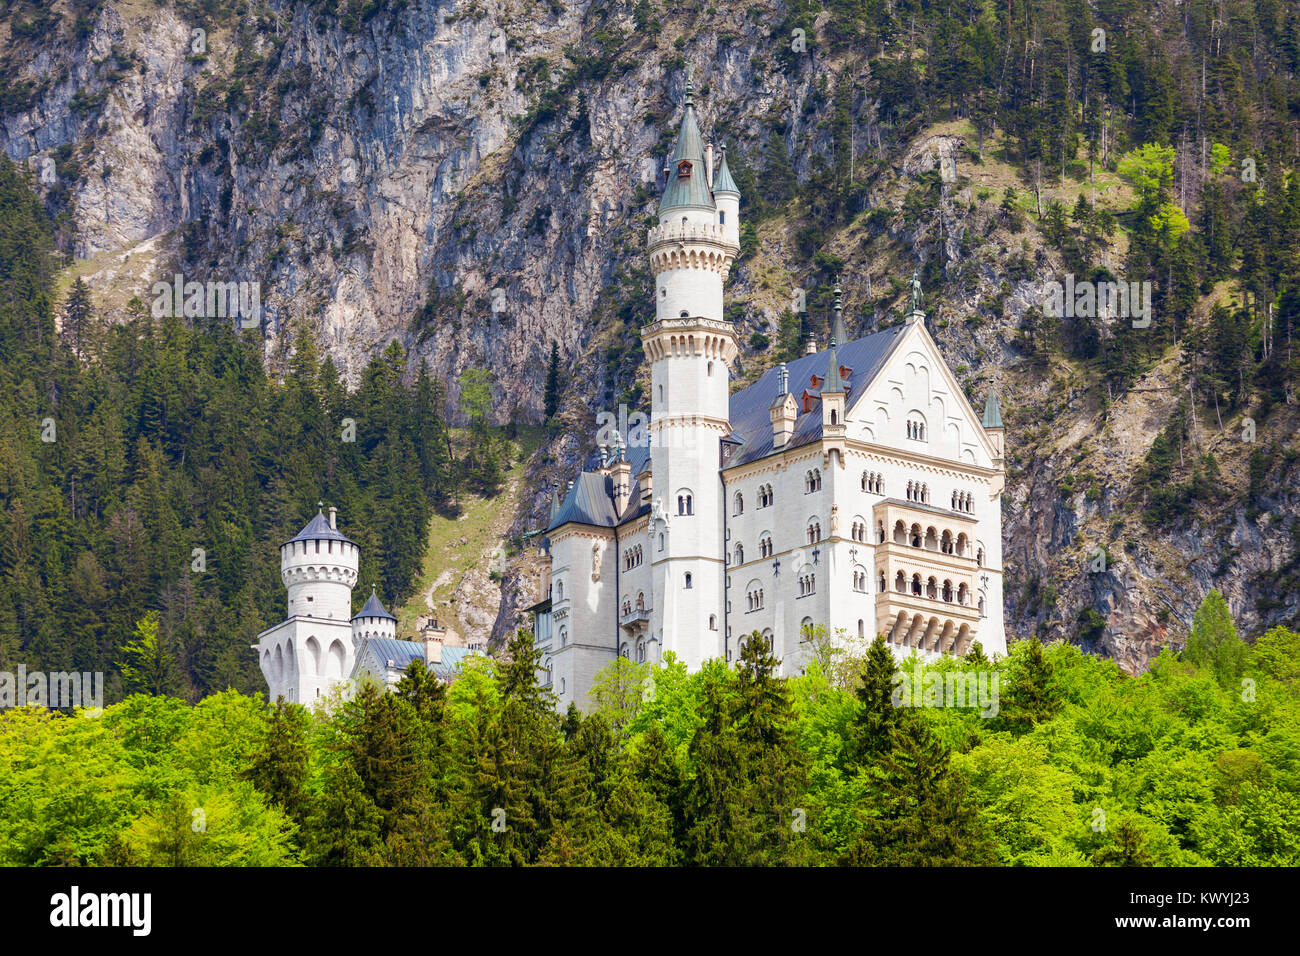 Schloss Neuschwanstein Castle or New Swanstone Castle is a Romanesque Revival palace in Hohenschwangau village near - Stock Image